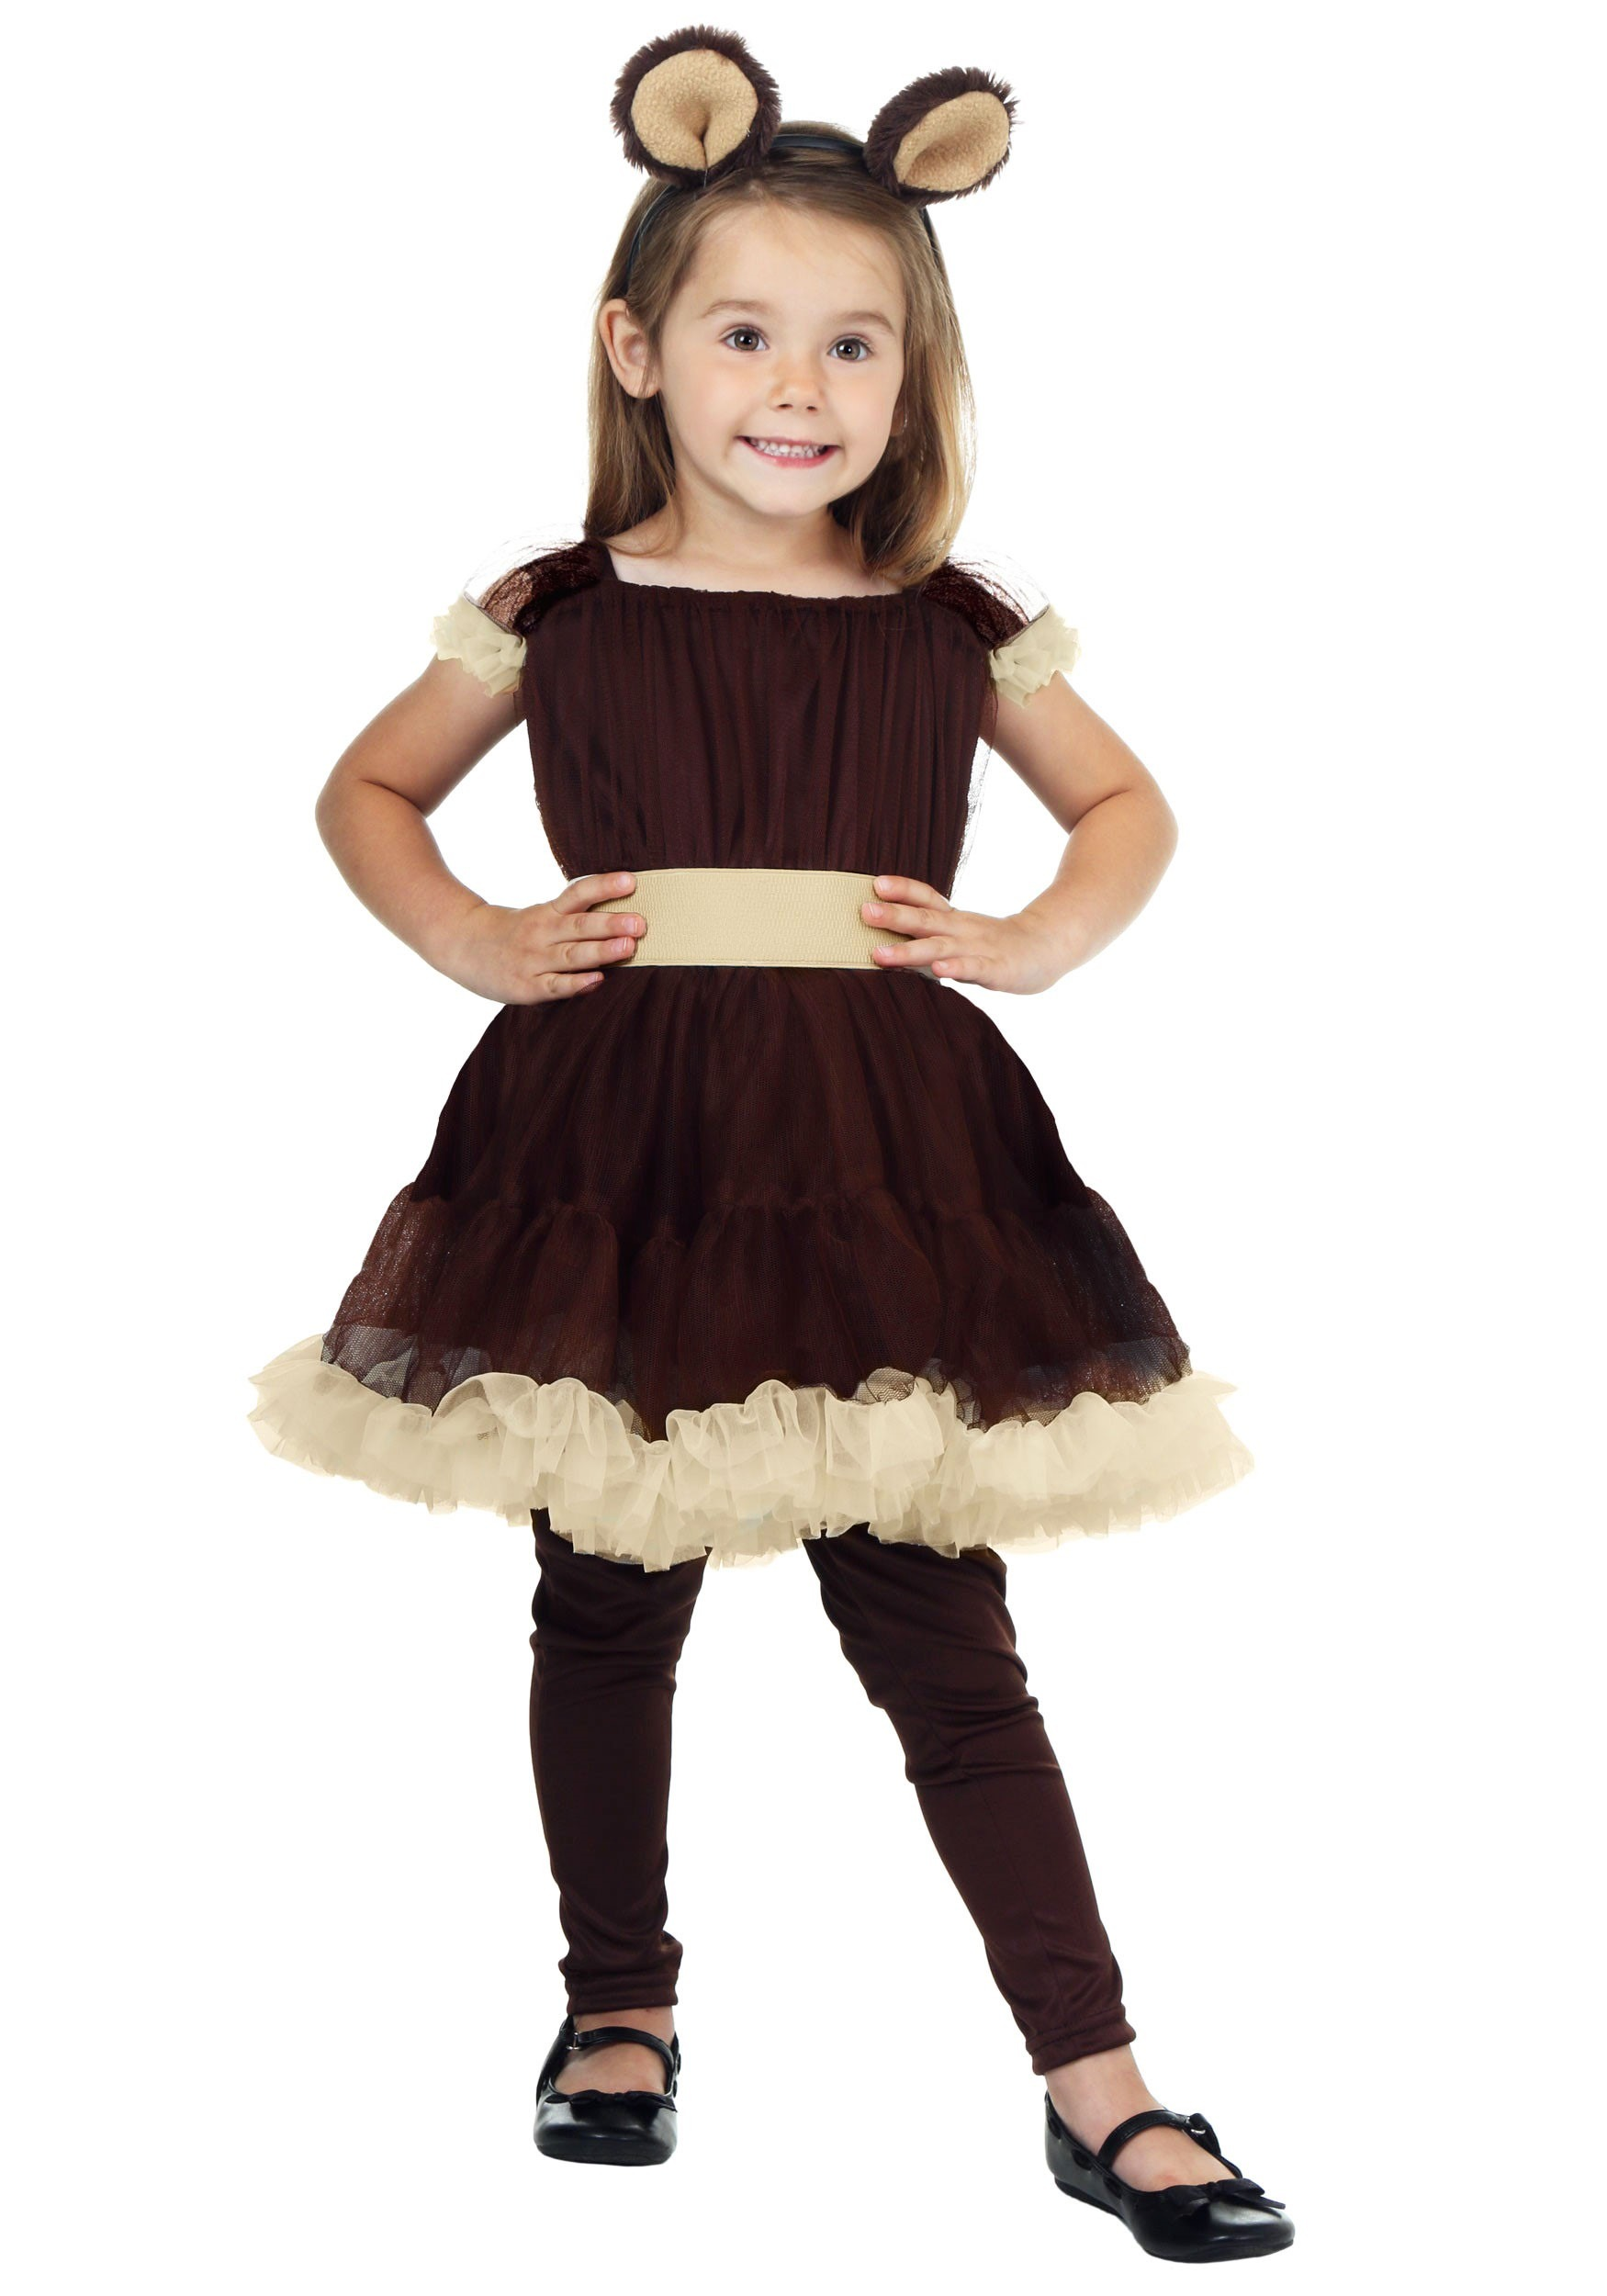 Toddler Girlu0027s Bear Costume  sc 1 st  Halloween Costumes & Bear Costumes for Adults u0026 Kids - HalloweenCostumes.com